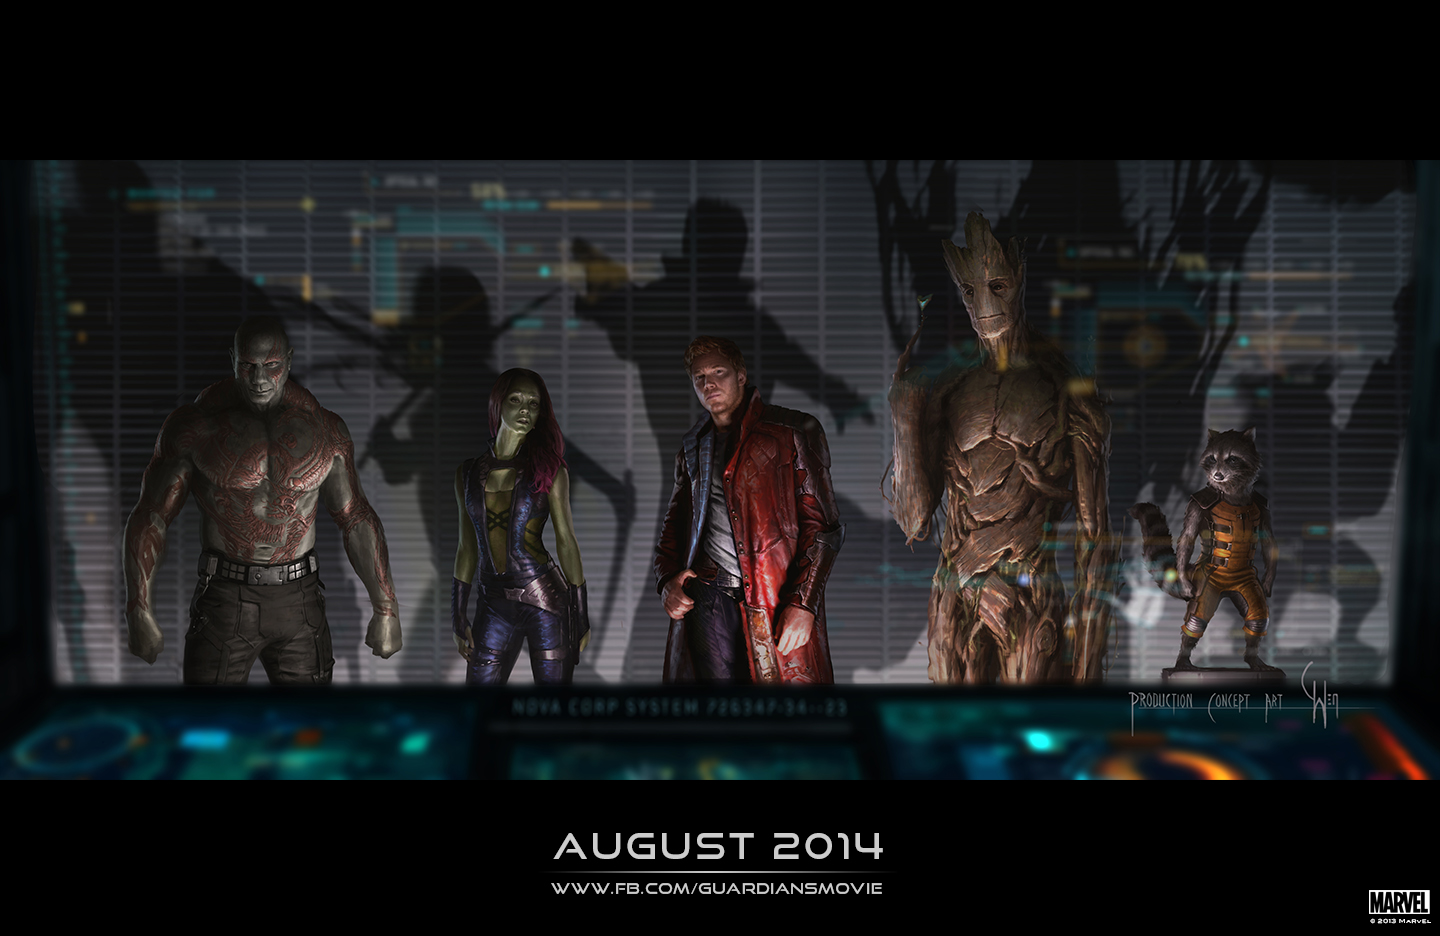 guardians of the galaxy concept art final The Geek Beat: Why 2014 Will Be a Risky Year for Geeky Movies